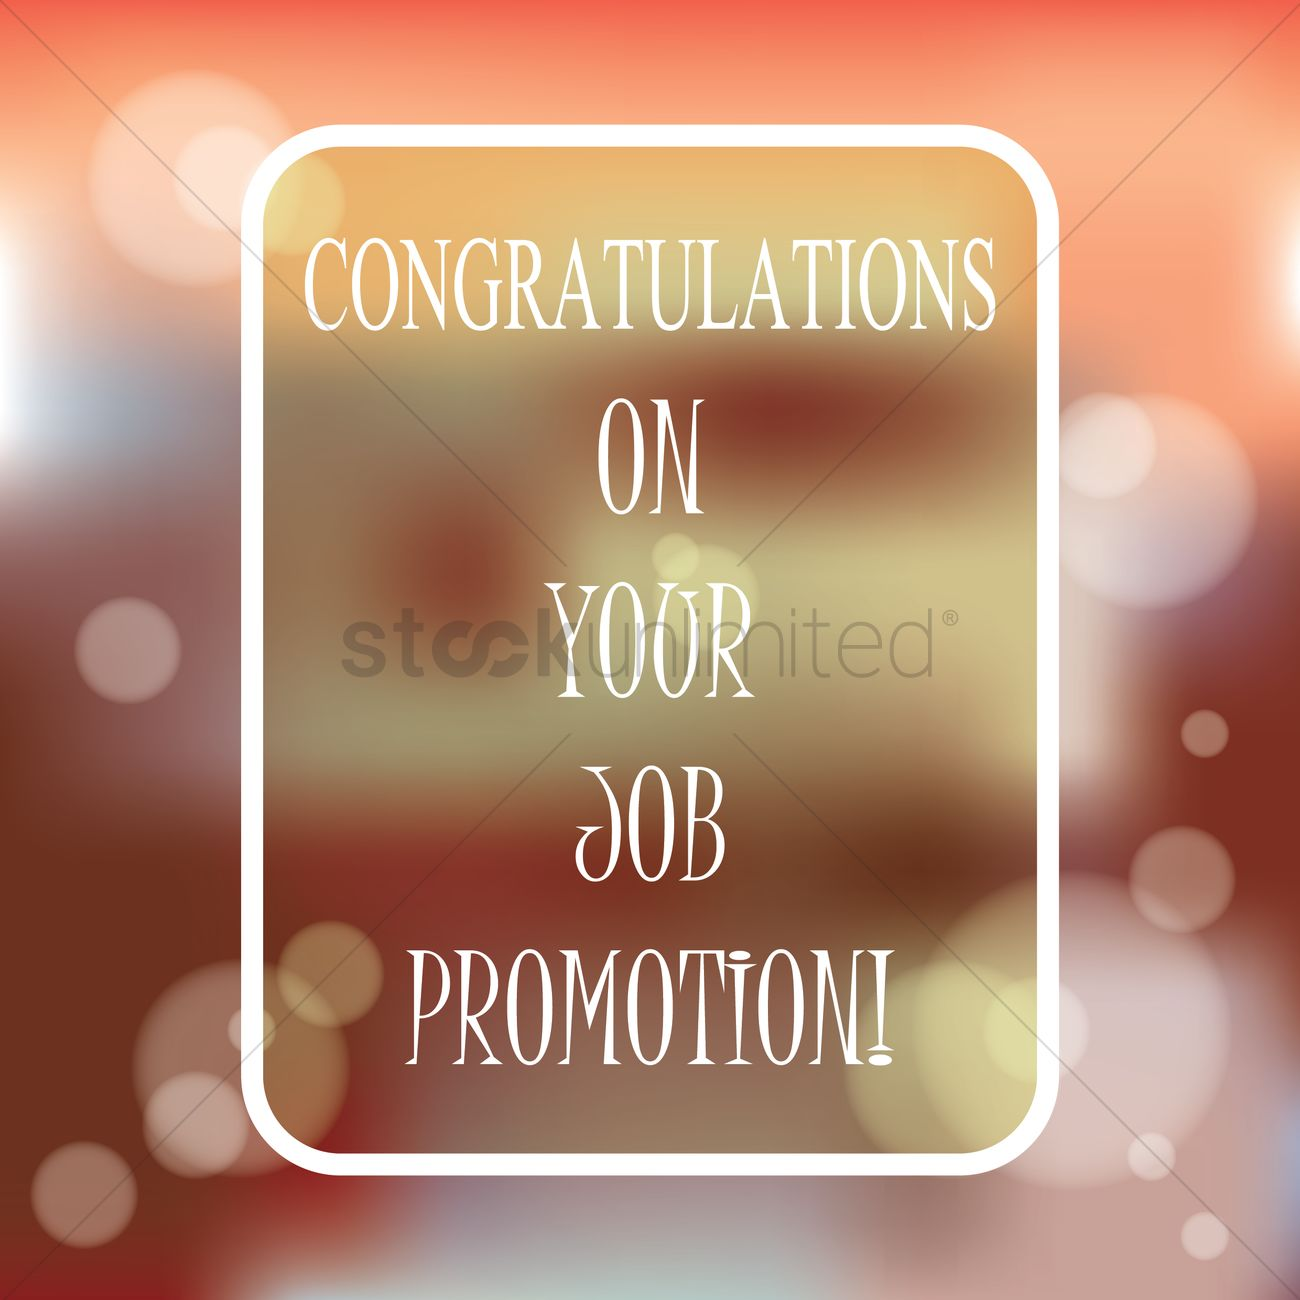 Congratulations Quotes New Job Position: Your New Job. Ecards Congratulations New Job Funny